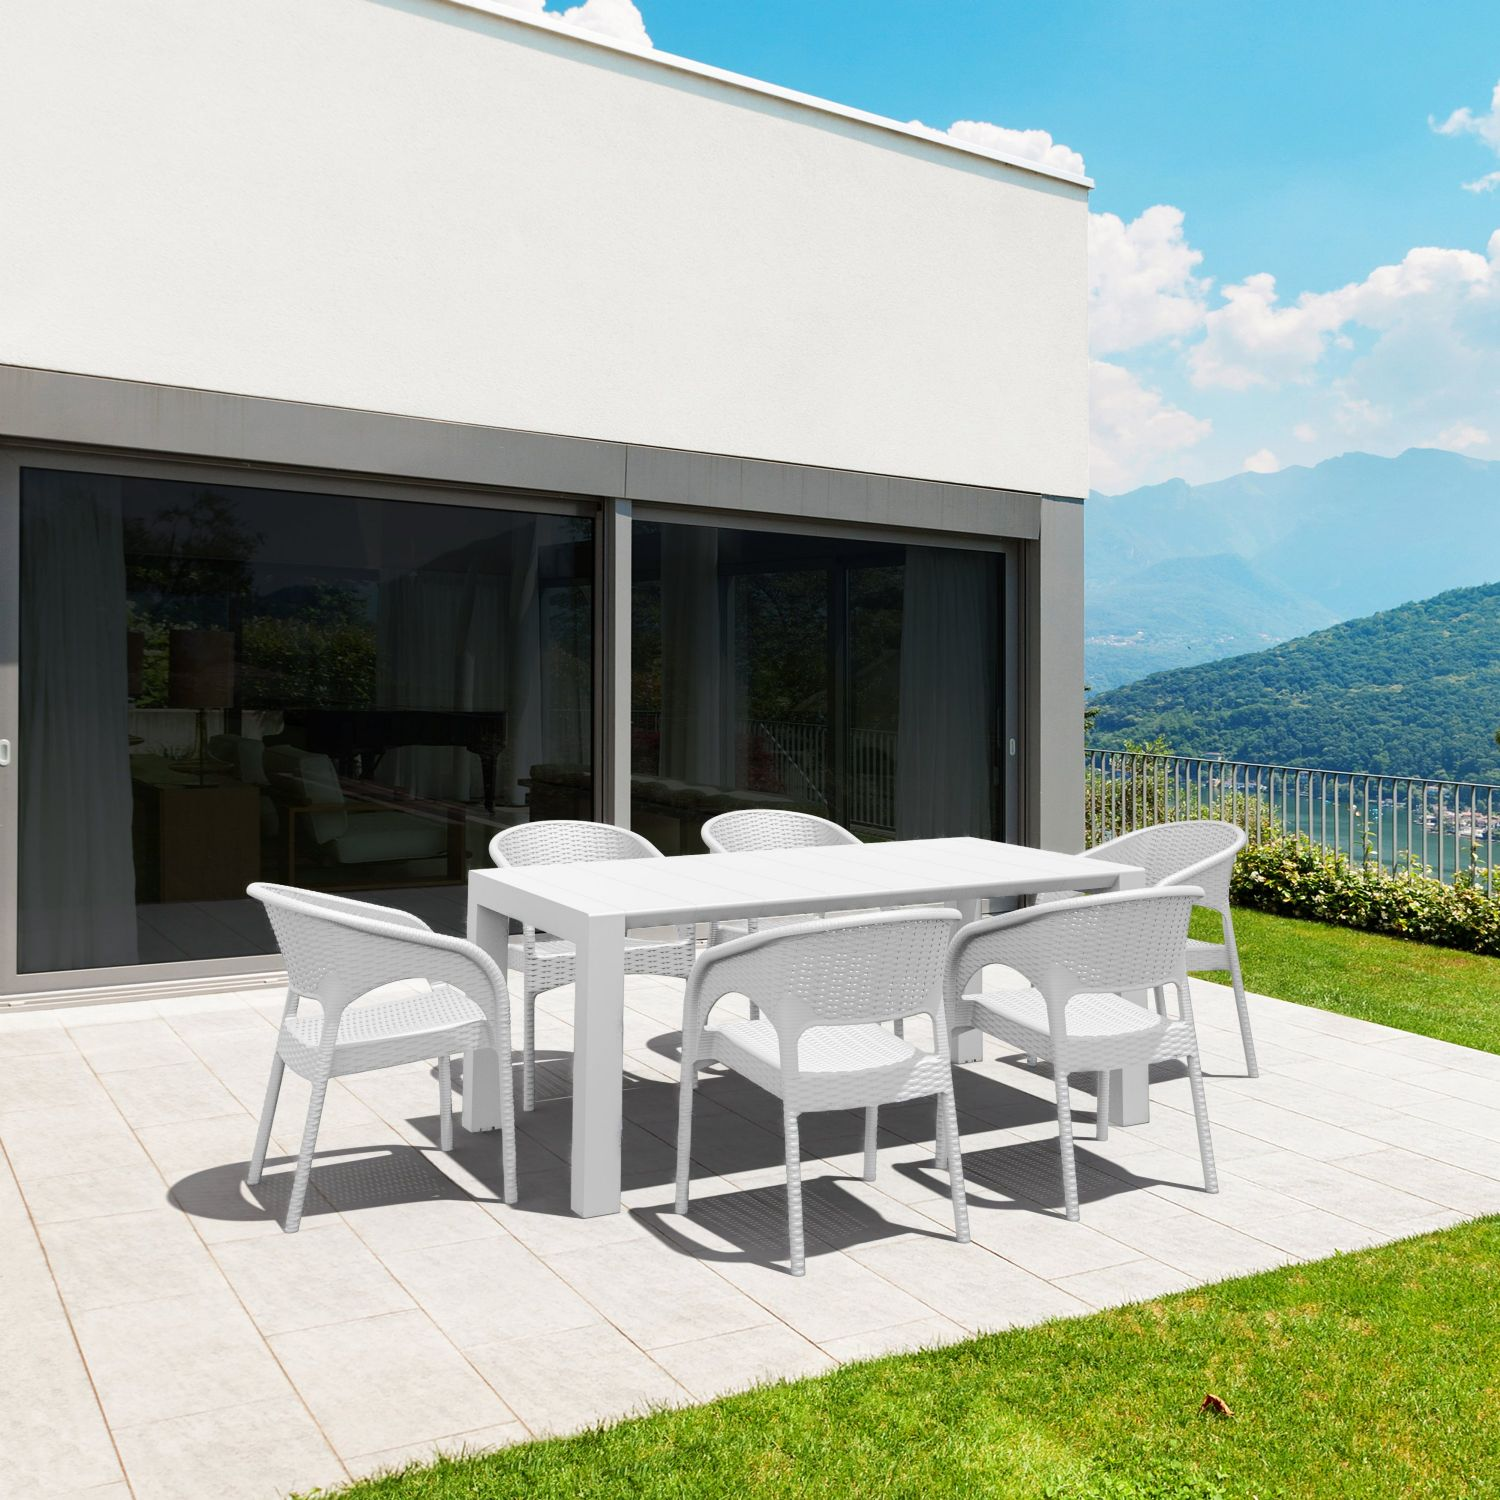 Vegas Outdoor Dining Table Extendable from 70 to 86 inch White ISP774-WH - 27